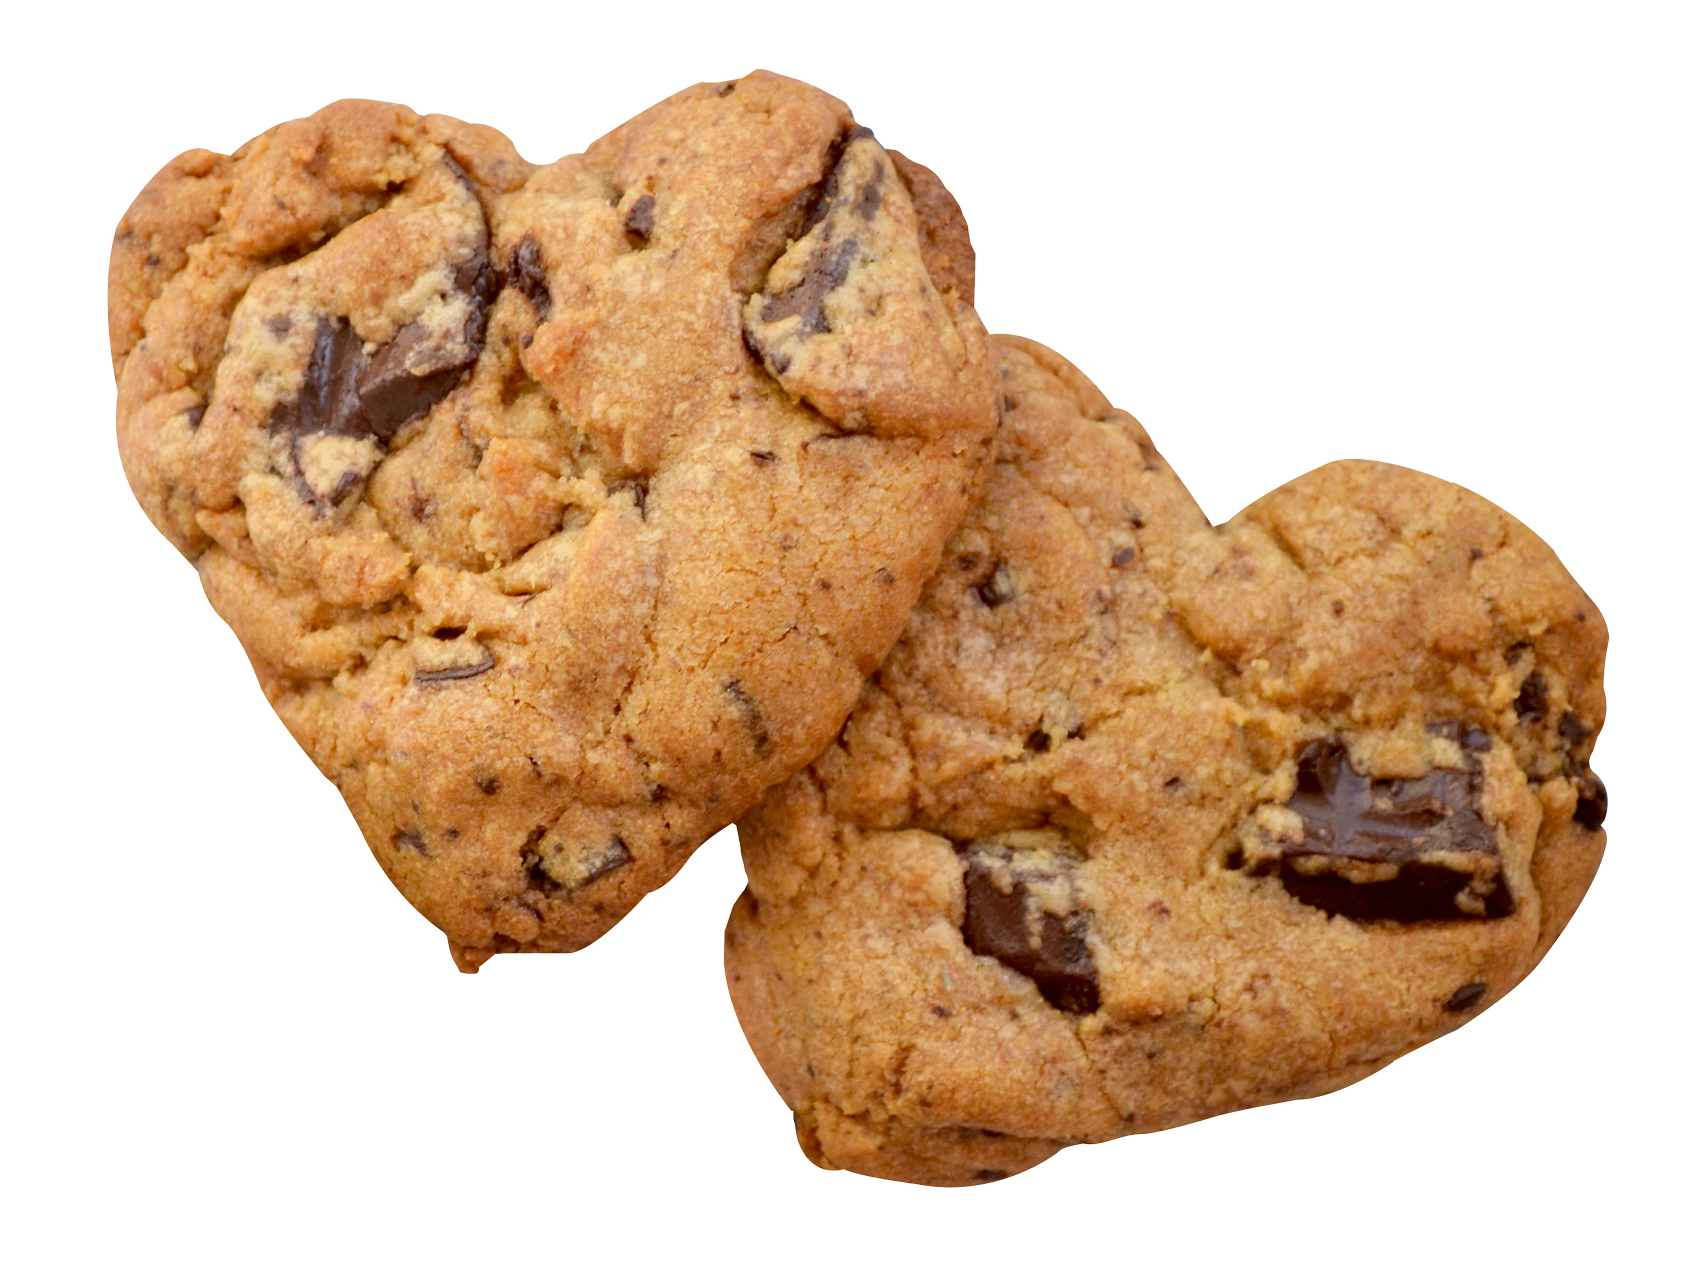 Hd Heart Chocolate Cookie Transparent Background image #47925